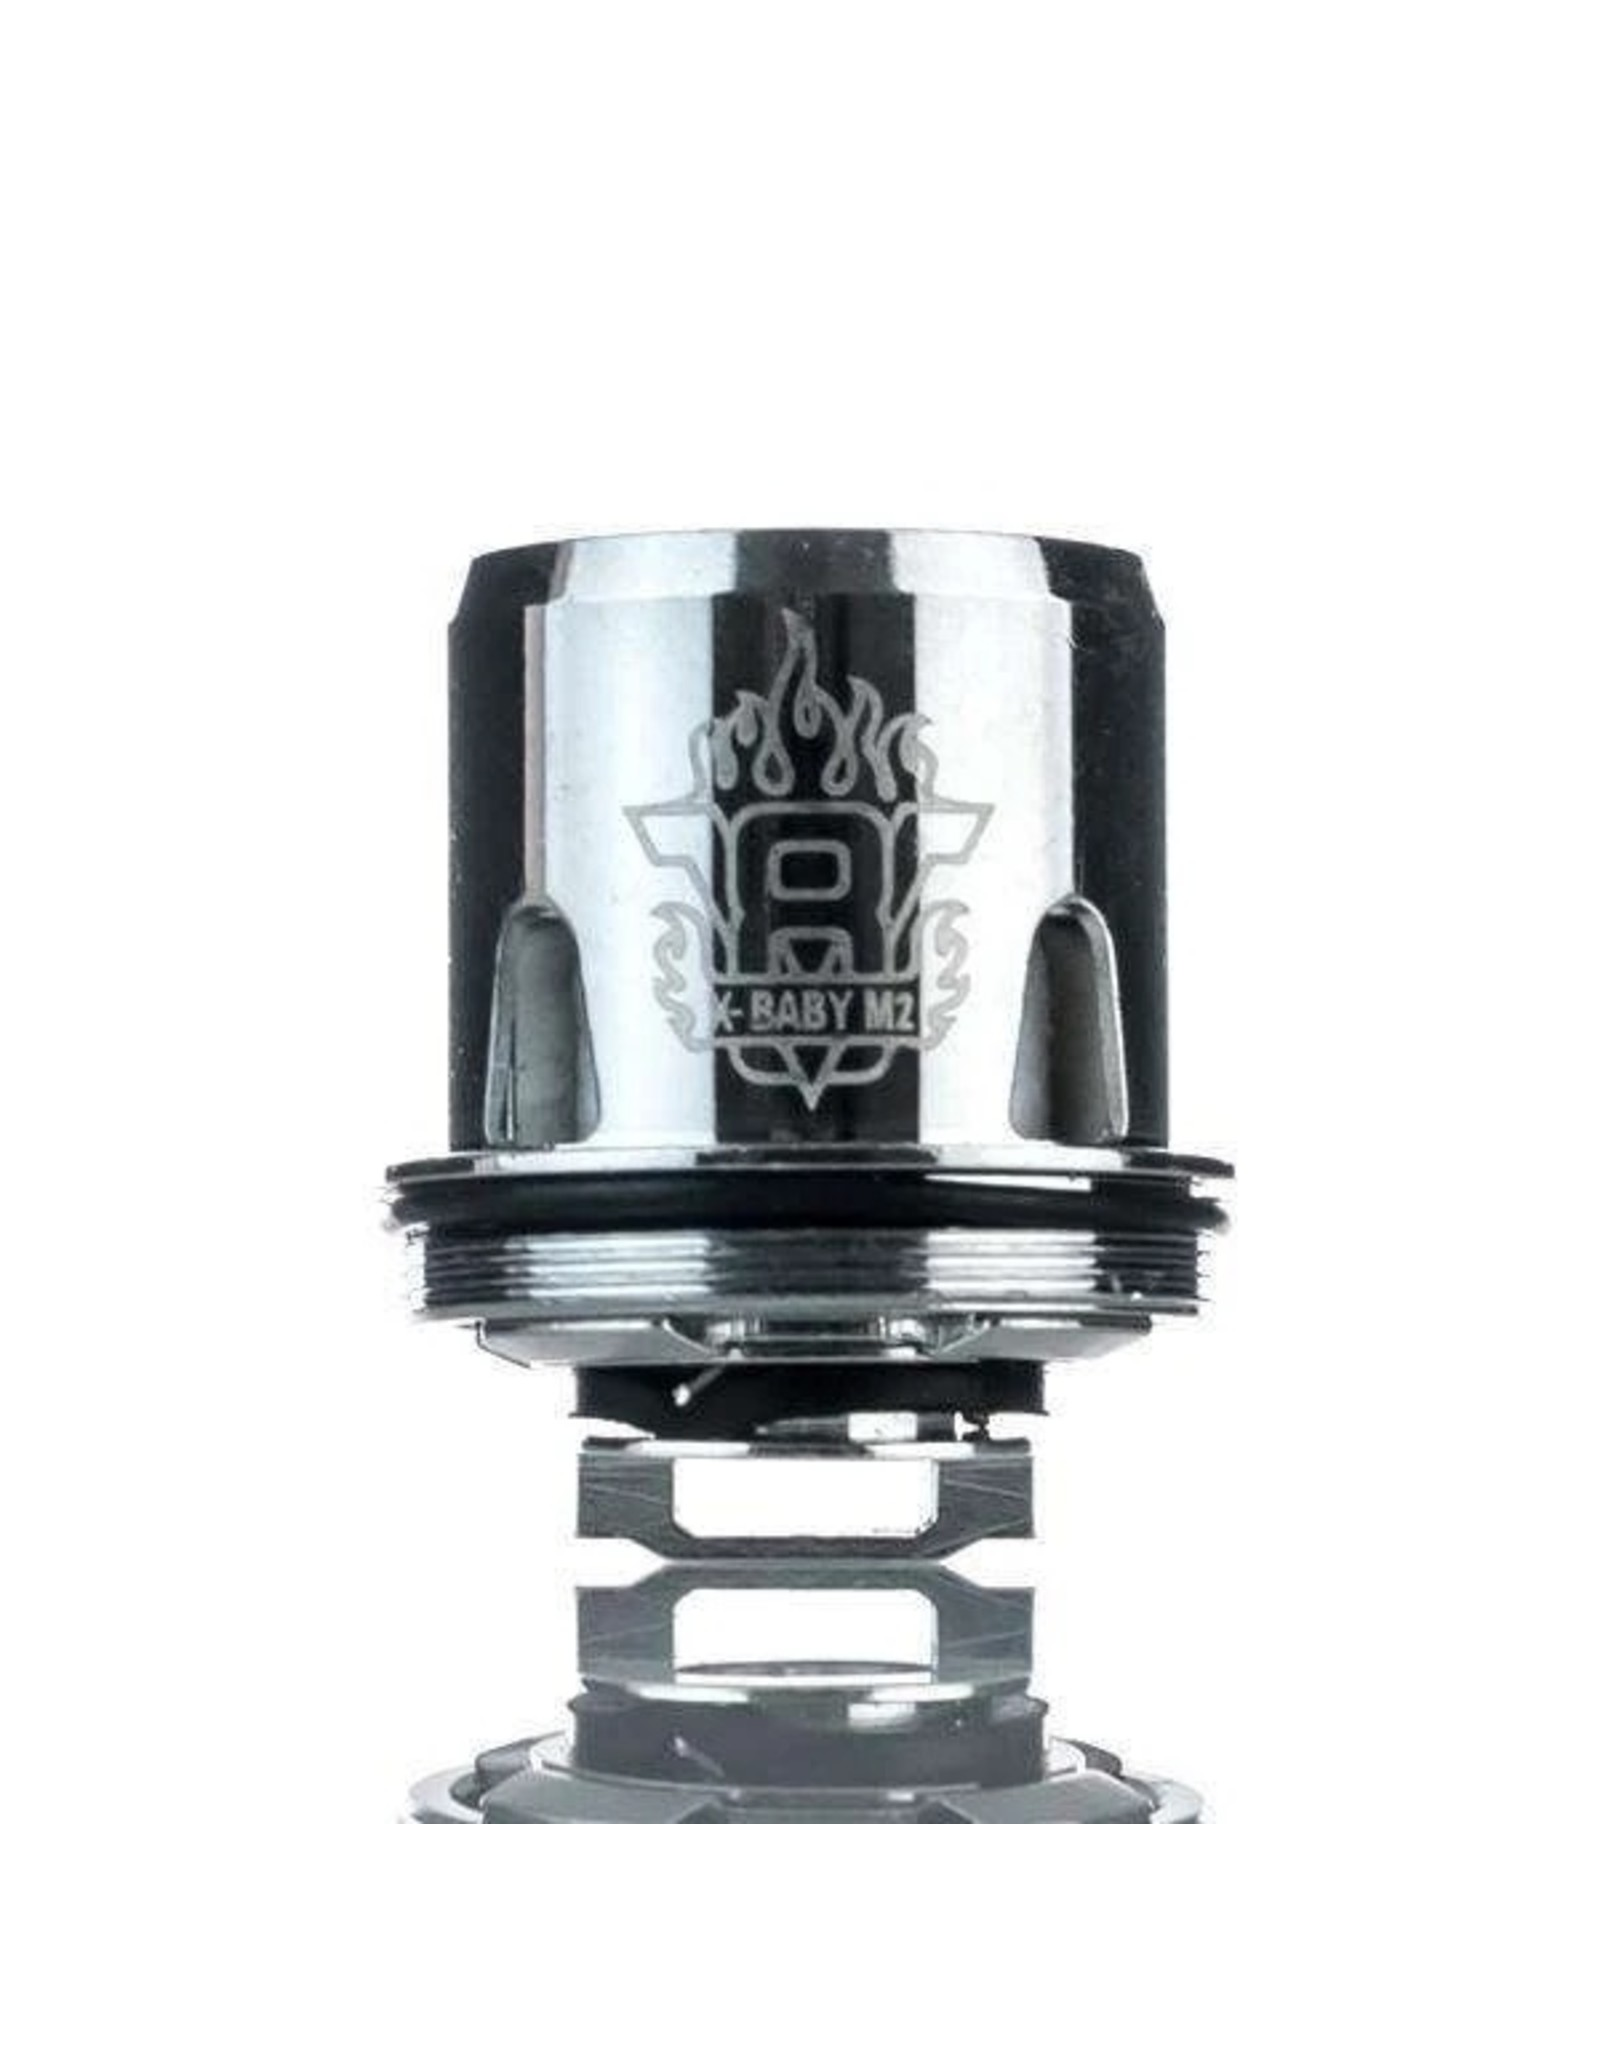 SMOK SMOK V8 X-BABY Q2 0.4 OHM 40-70W SINGLE